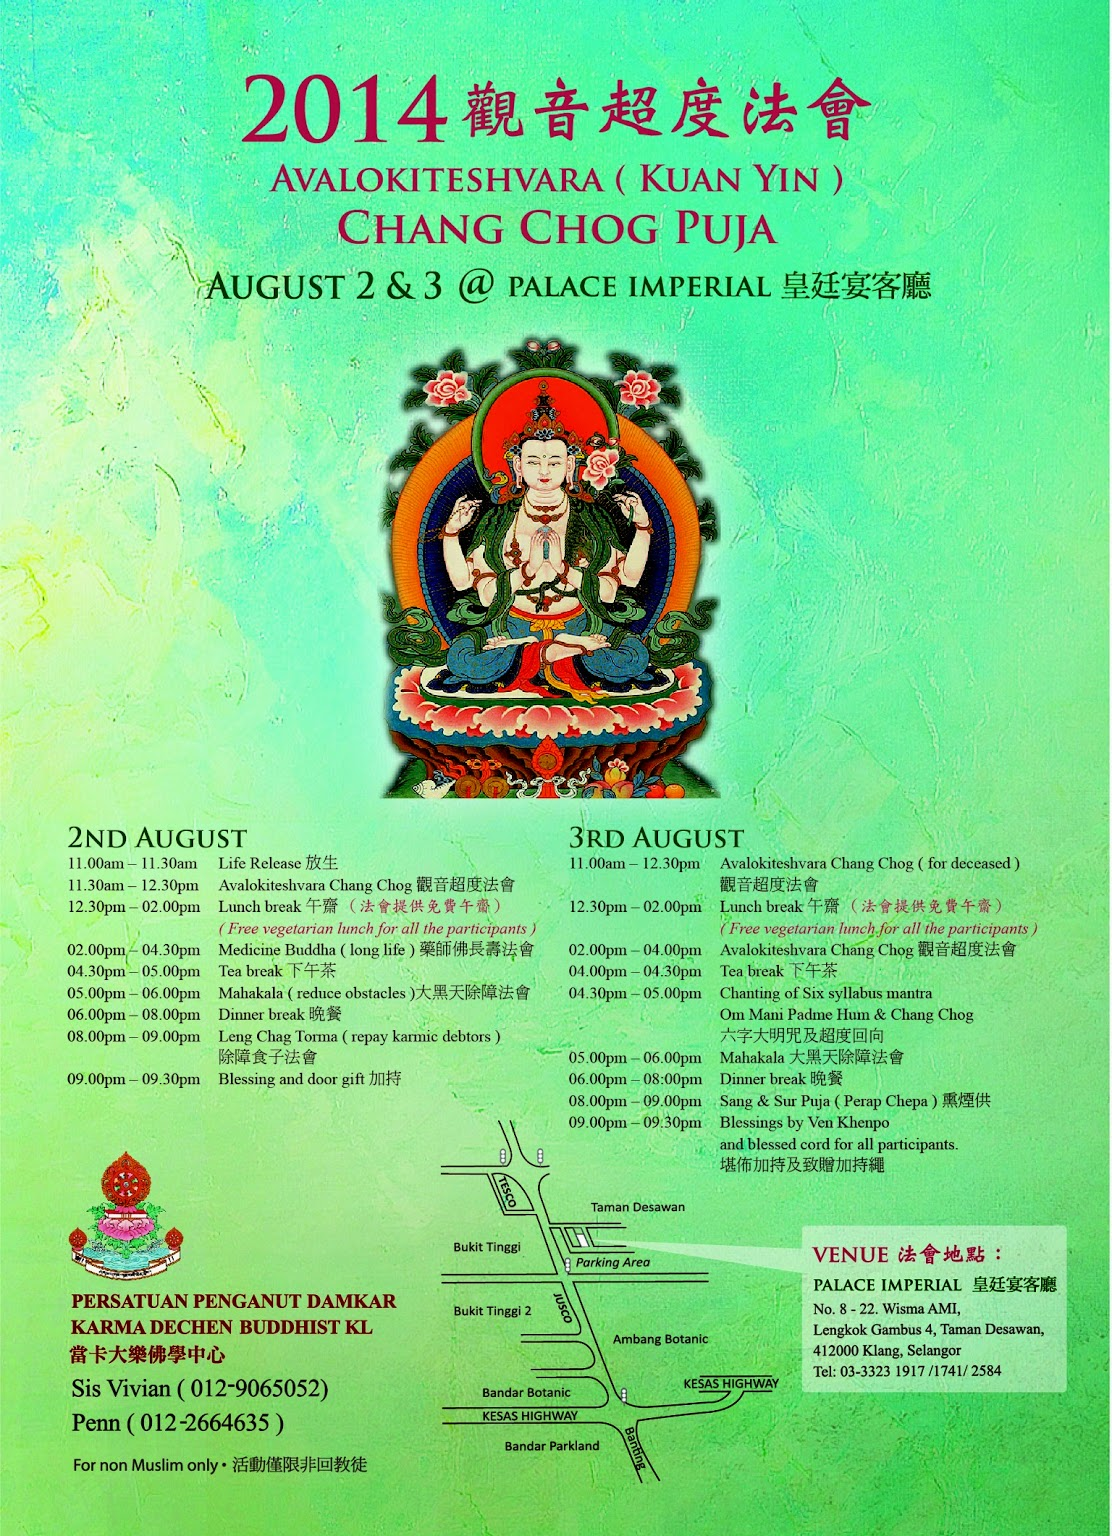 Announcement: 2014 Avalokitheshvara Chang Chog Puja